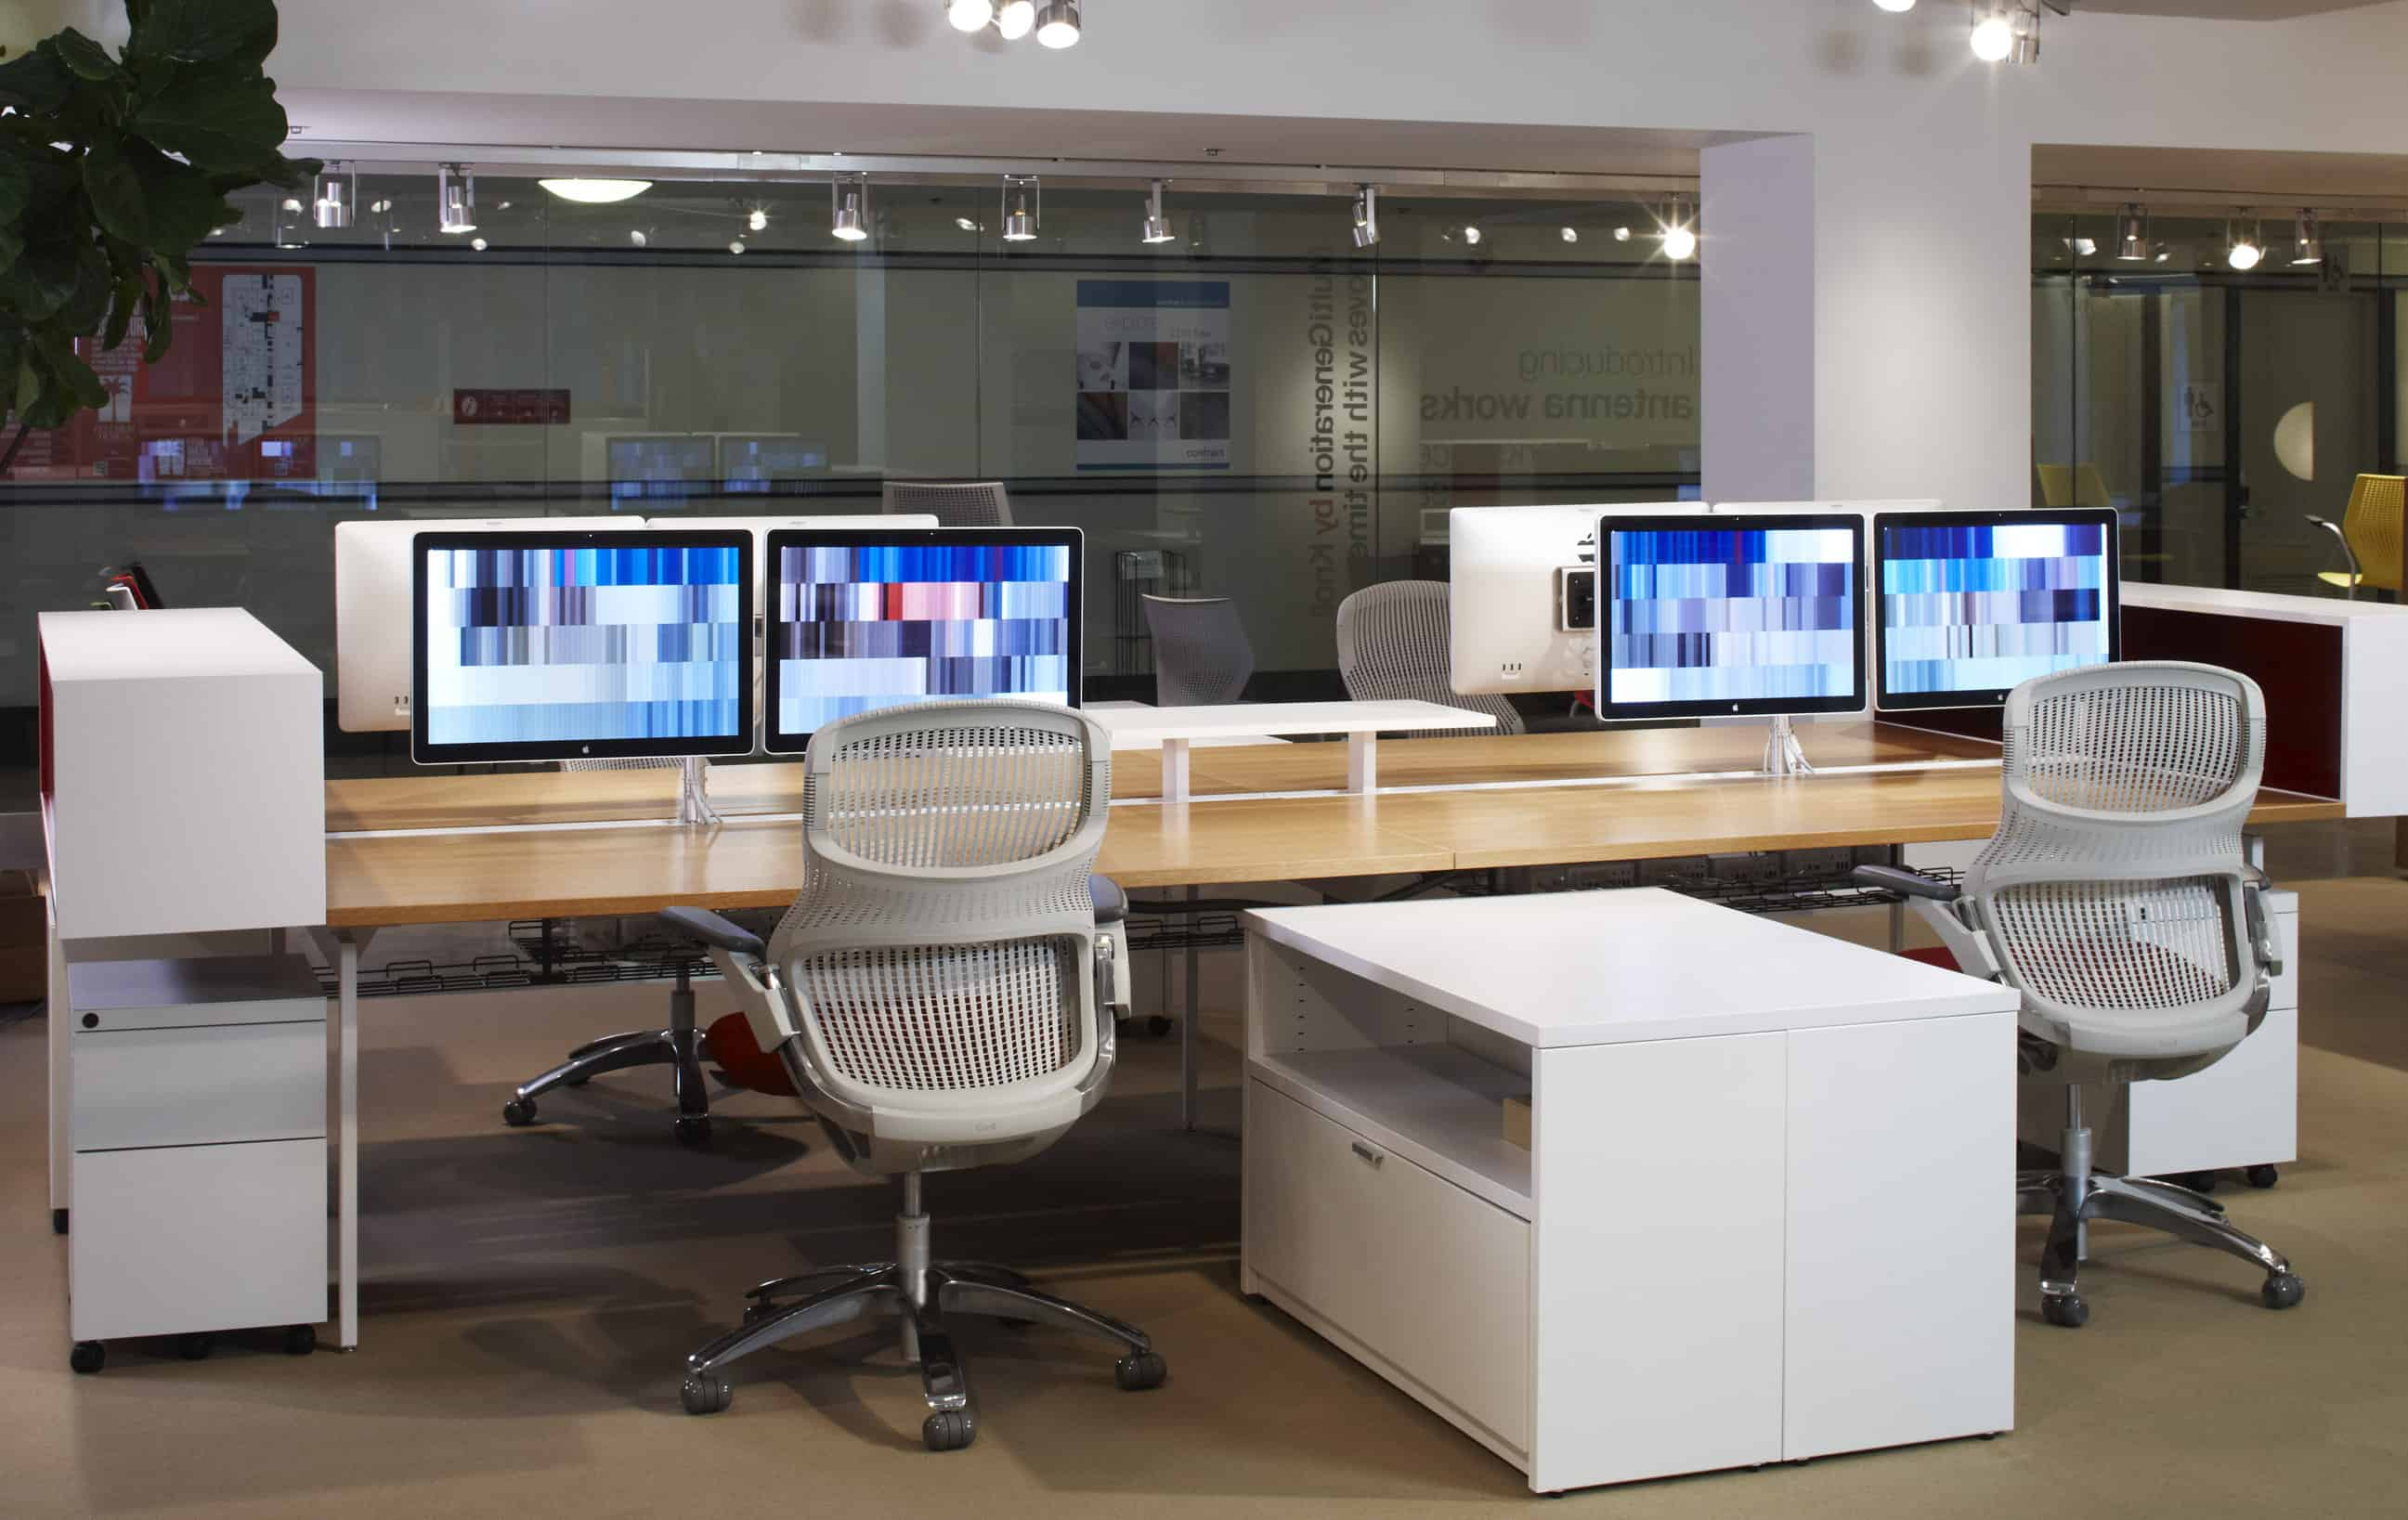 corporate office desk. Top 5 Corporate Office Furniture Trends In Northeastern Wisconsin Desk I